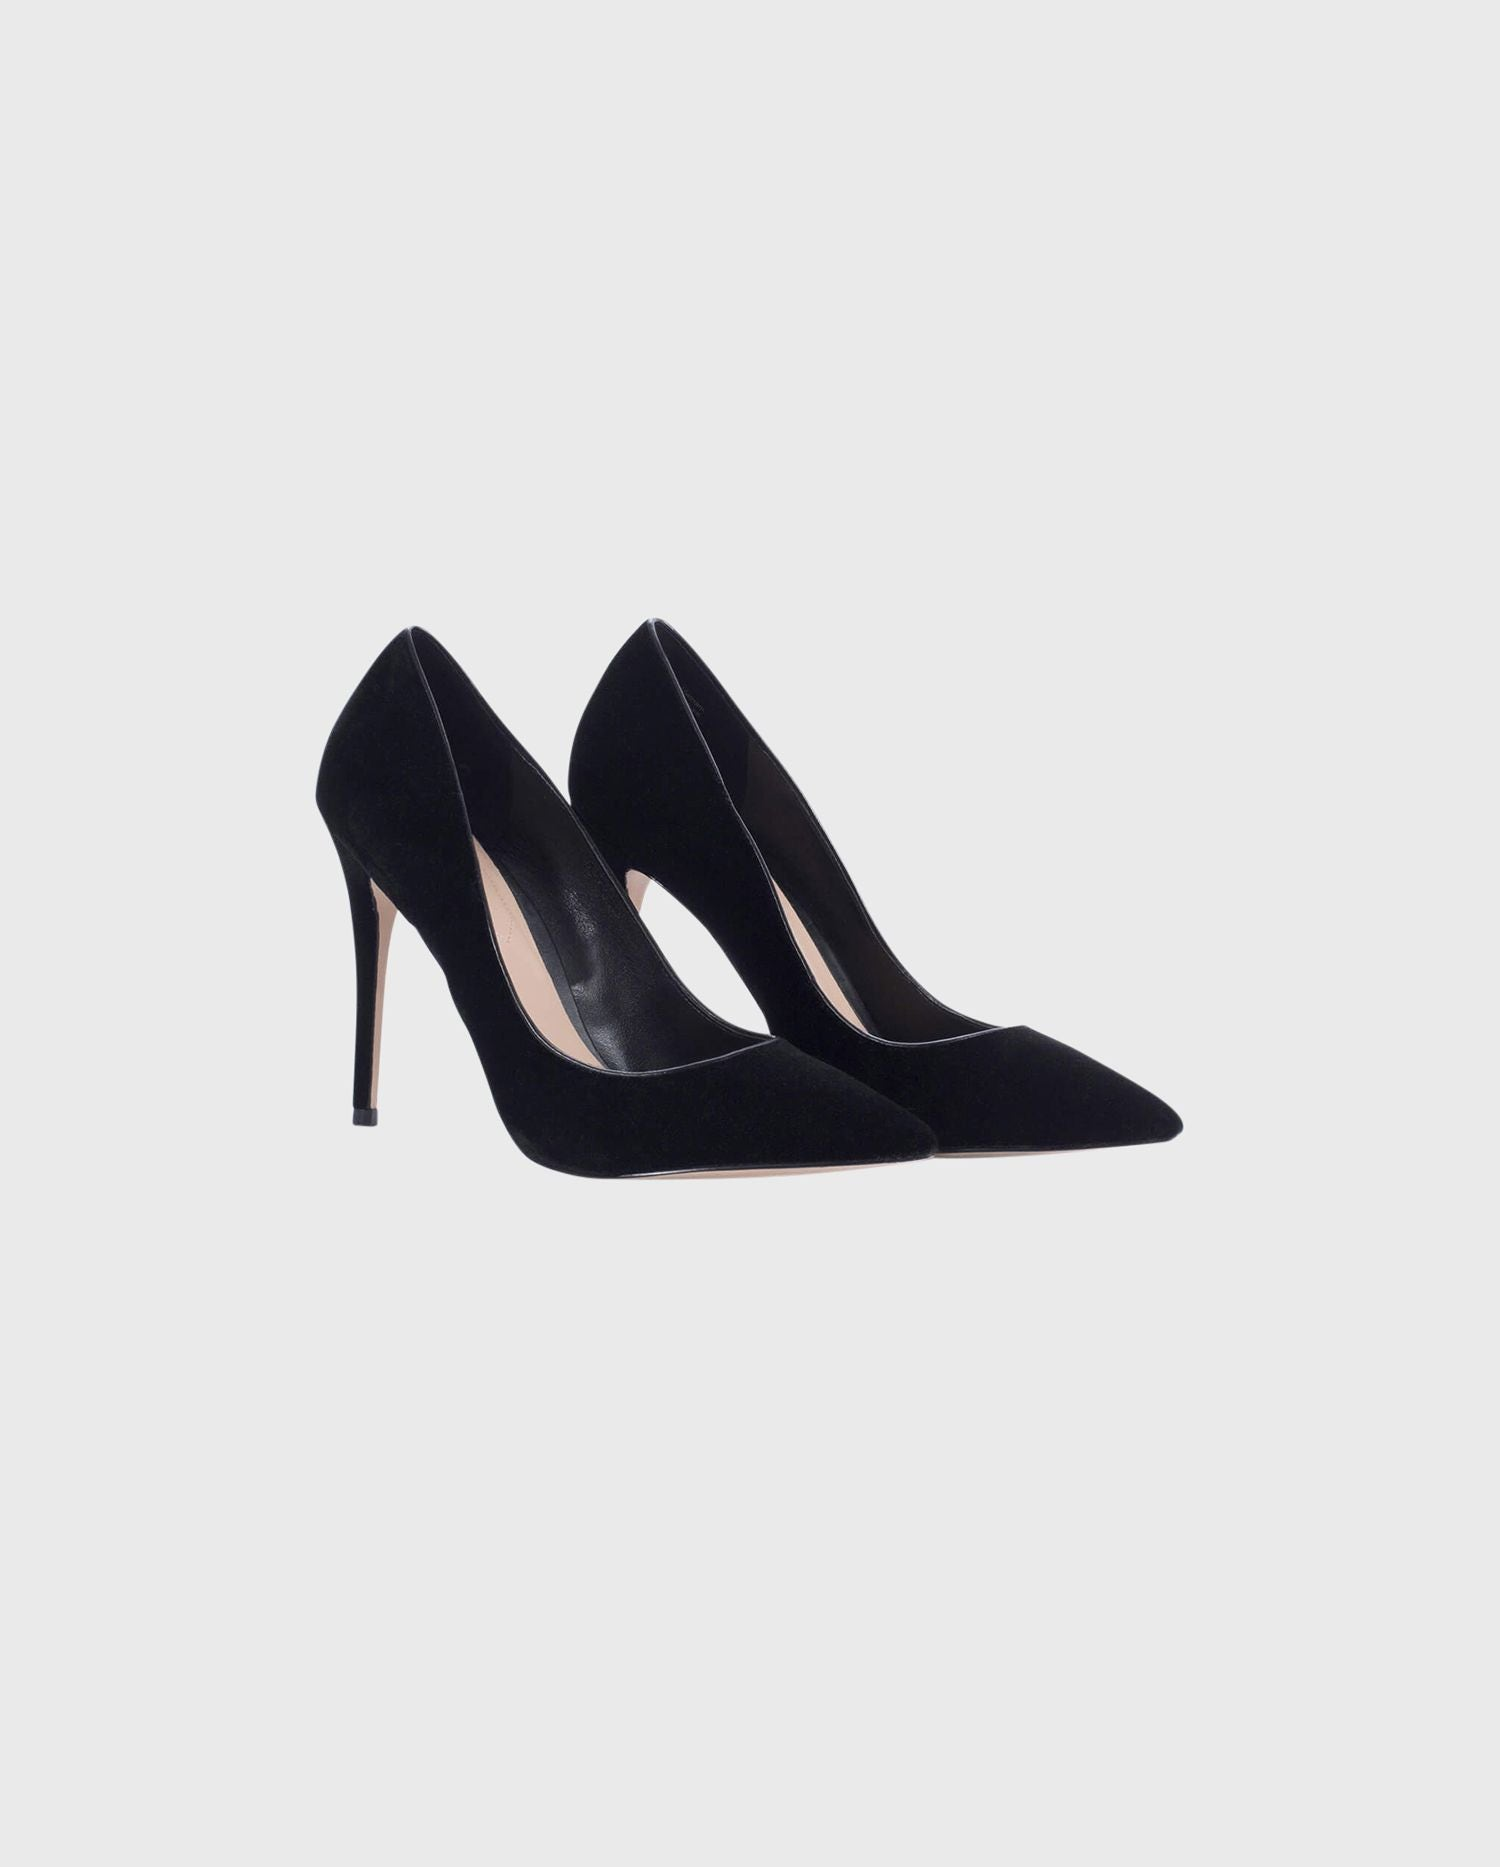 ORLANDO:  Black High Heels Pump With Pointed Toe | ANNE FONTAINE